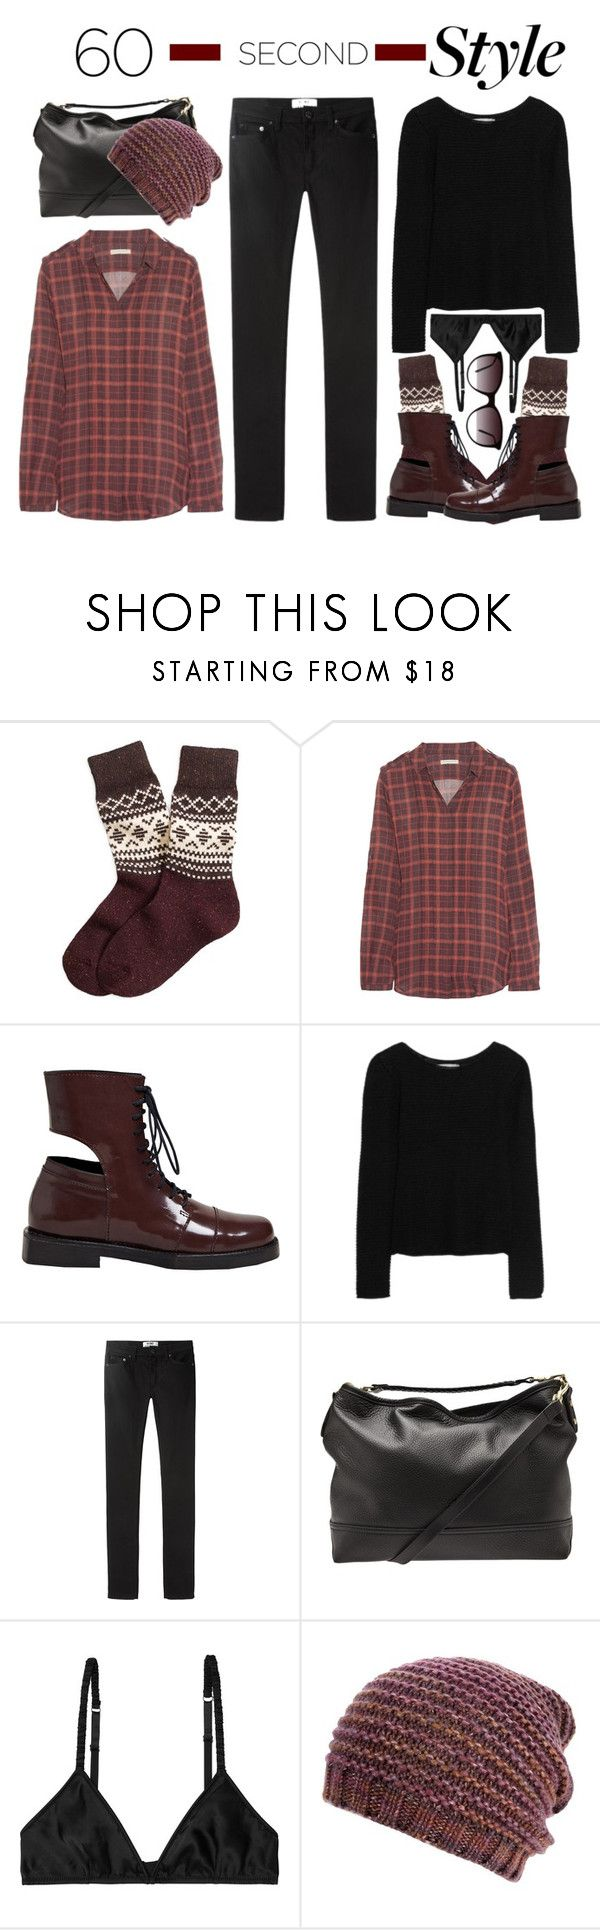 """""""60-Second Style: Pumpkin Patch Falling for you!"""" by yours-styling-best-friend ❤ liked on Polyvore featuring Brooks Brothers, Burberry, Achilles Ion Gabriel, Kain, Acne Studios, Mulberry, Monki, Belmondo, Tiffany & Co. and pumpkinpatch"""